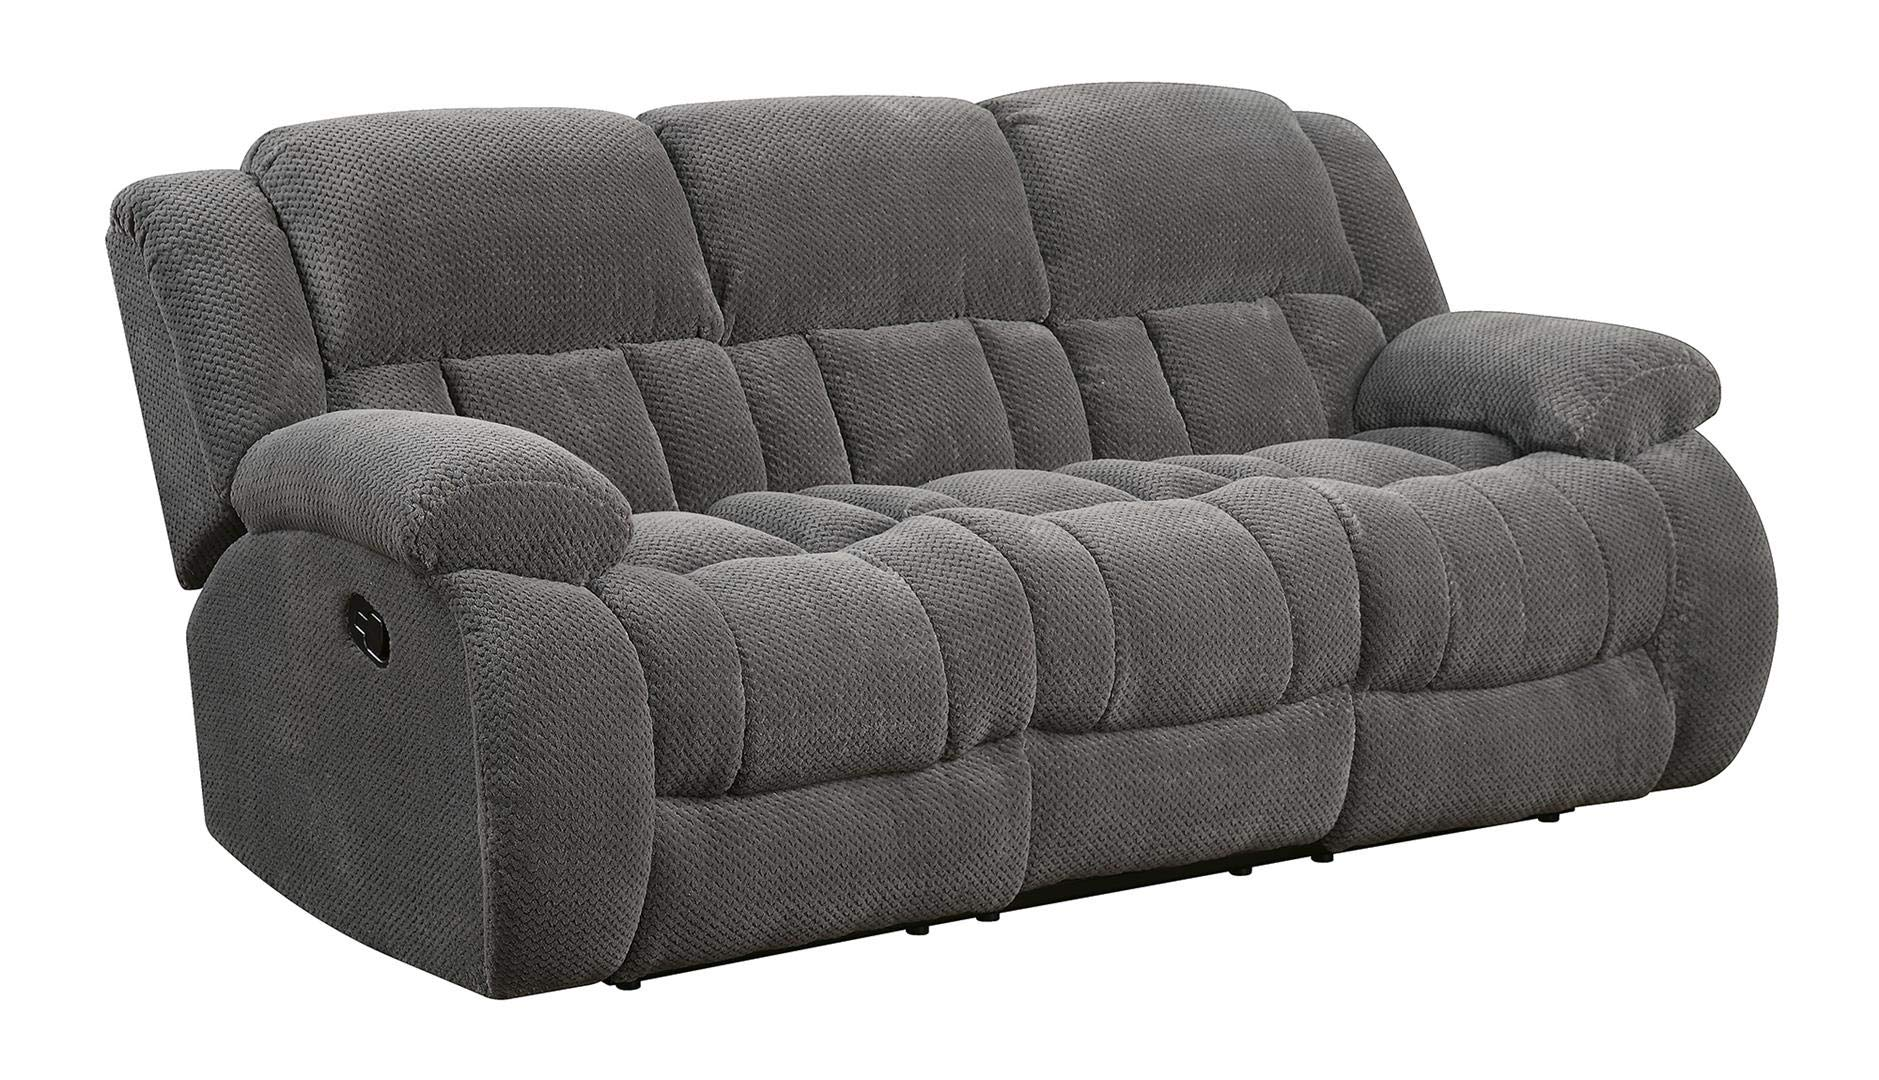 Coaster Home Furnishings Weissman Pillow Padded Motion Sofa Charcoal by Coaster Home Furnishings